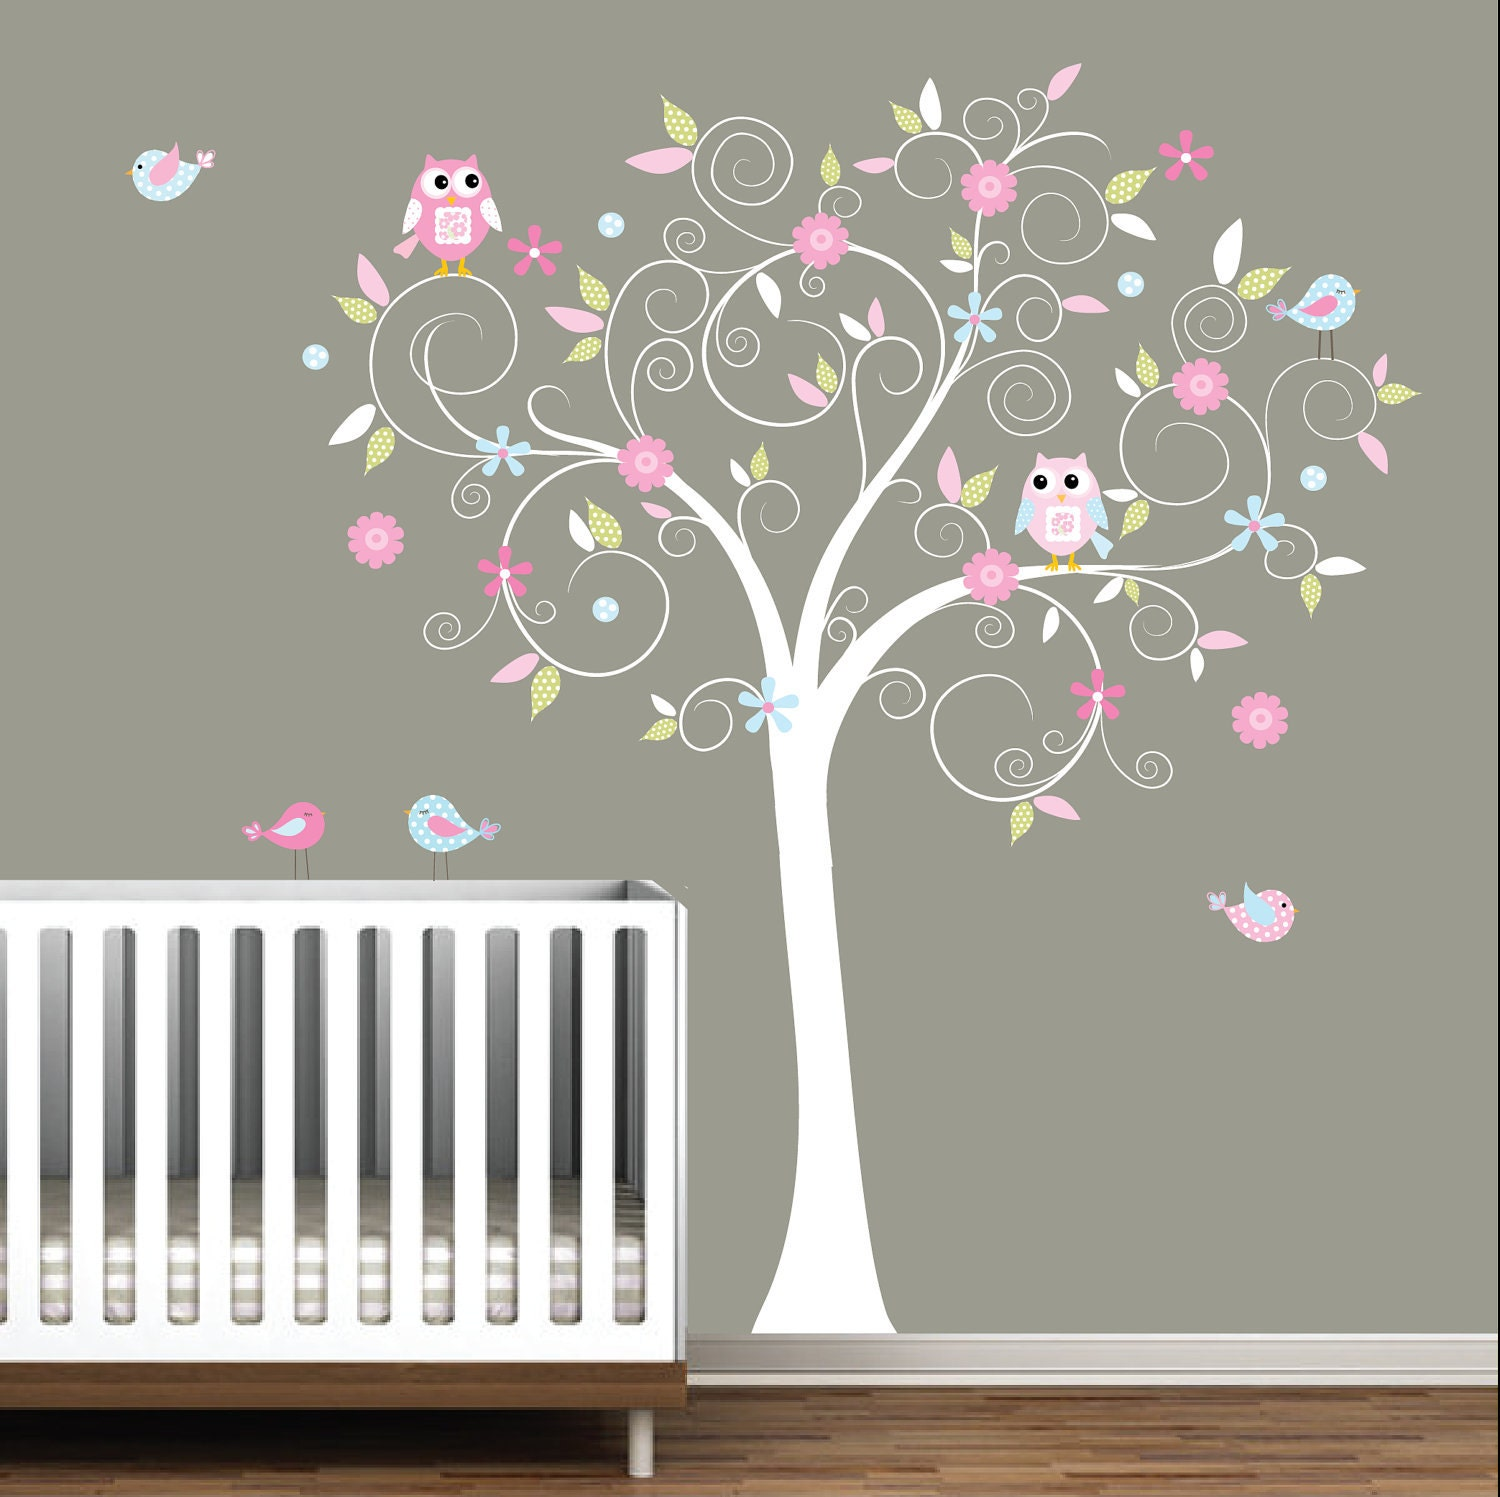 Decal stickers vinyl wall decals nursery tree e17 for Baby girl nursery mural